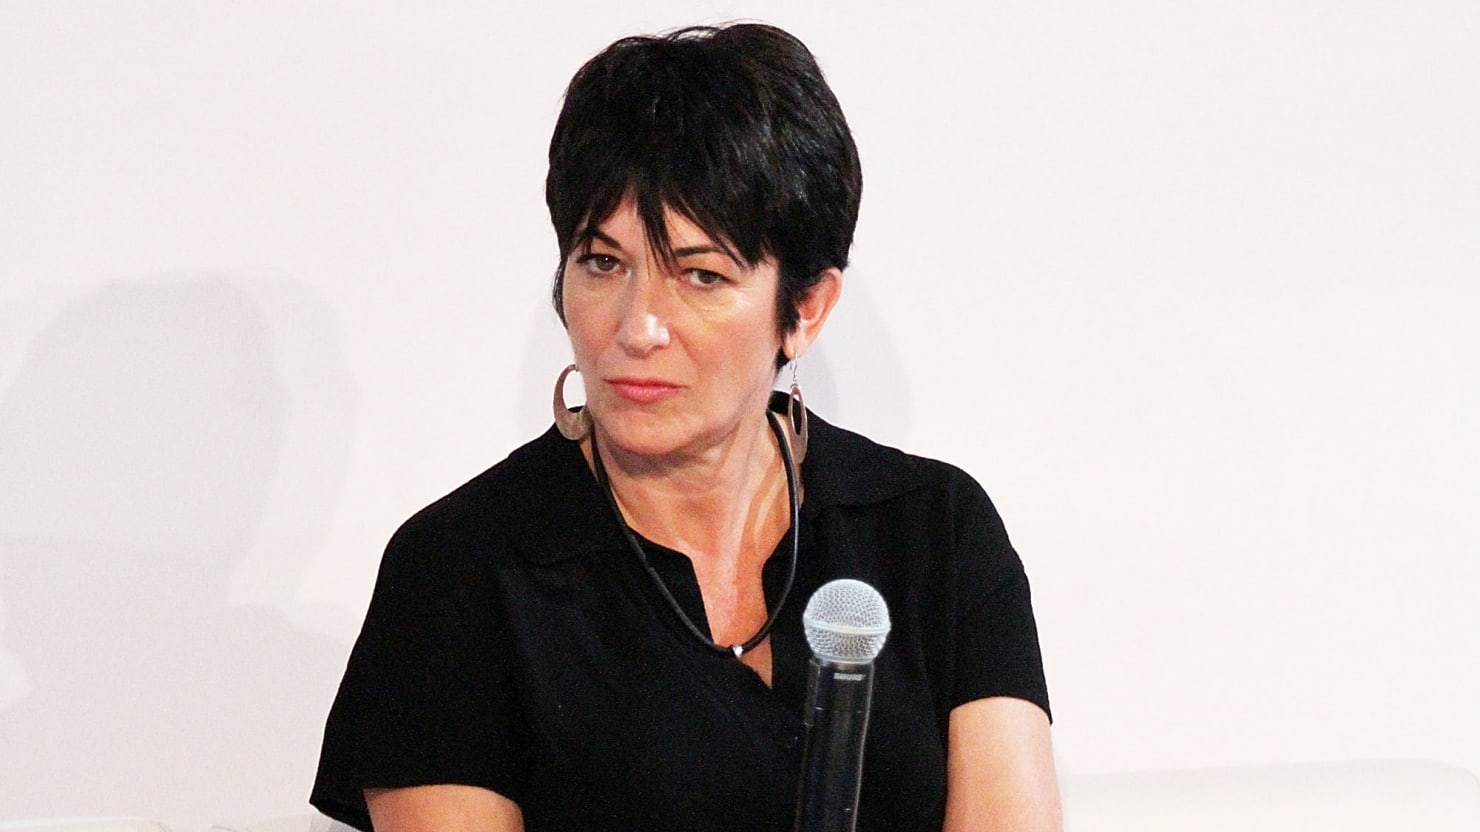 Ghislaine Maxwell Foolishly Tried to 'Evade Detection' by Wrapping Cell Phone in Foil: Prosecutors